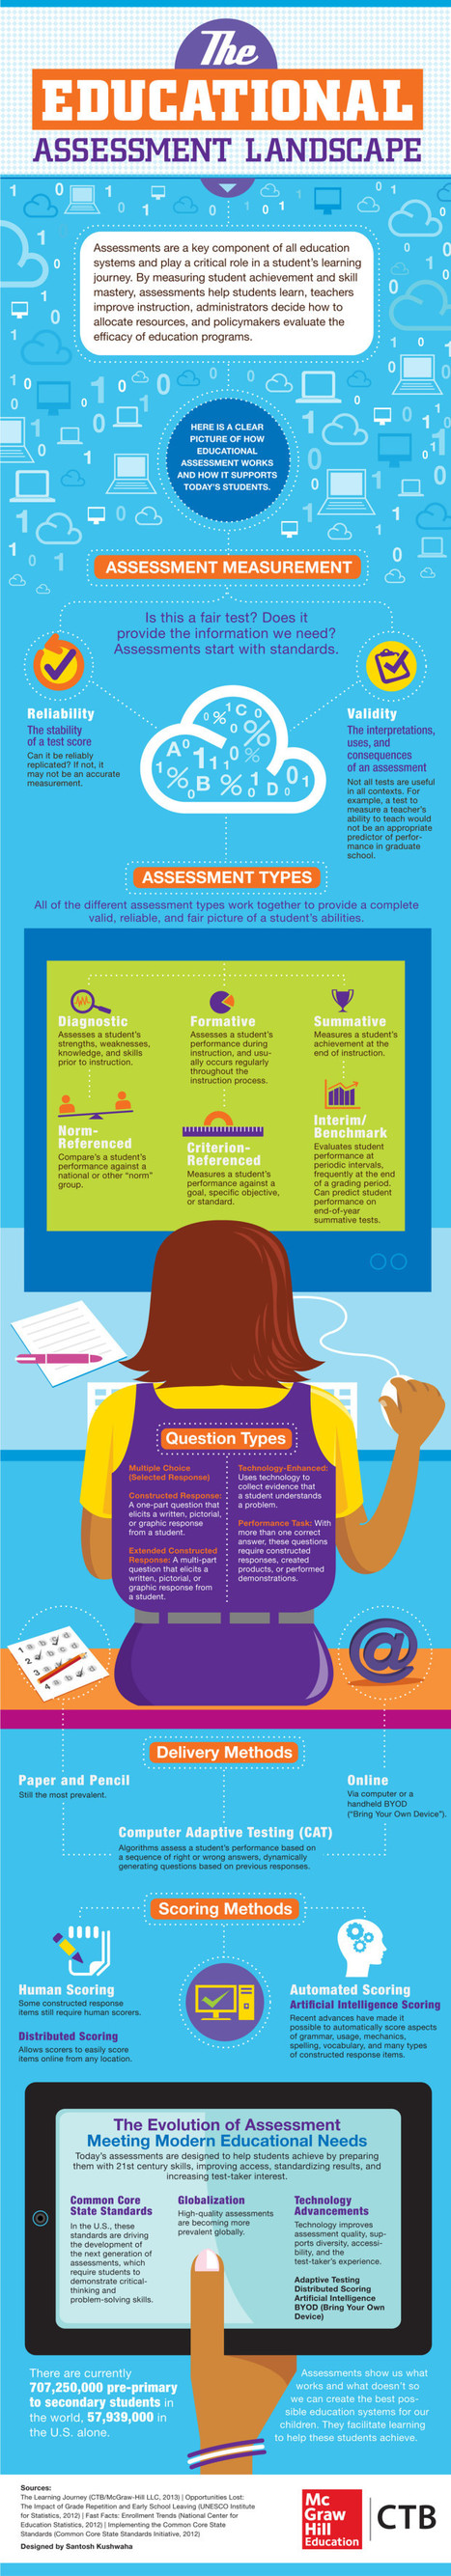 Infographie : The 6 Types Of Assessments (And How They're Changing) | Sciences du numérique et e-education | Scoop.it